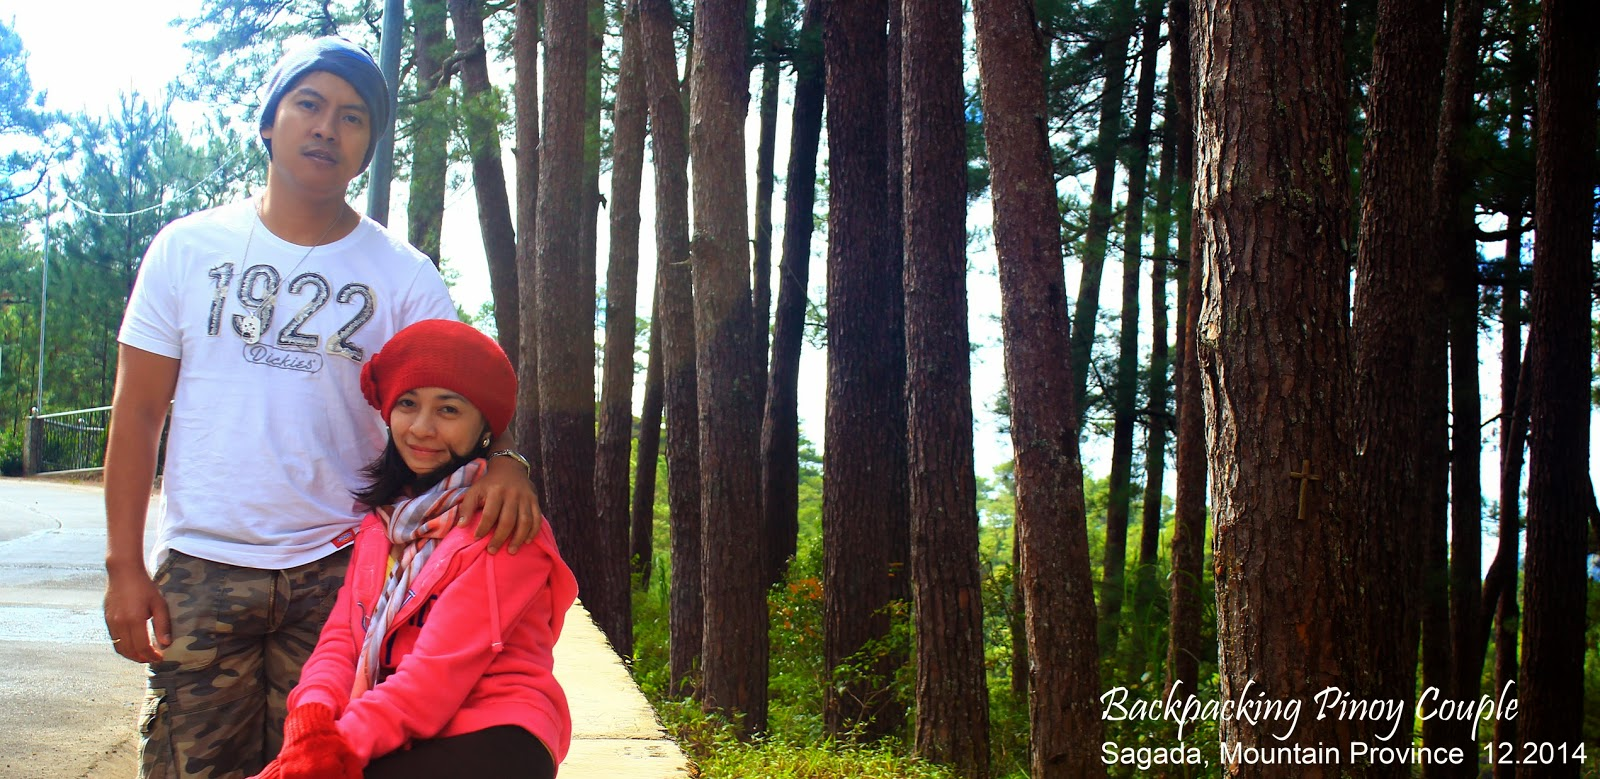 Backpacking Pinoy Couple, Sagada, Mountain Province, Philippines